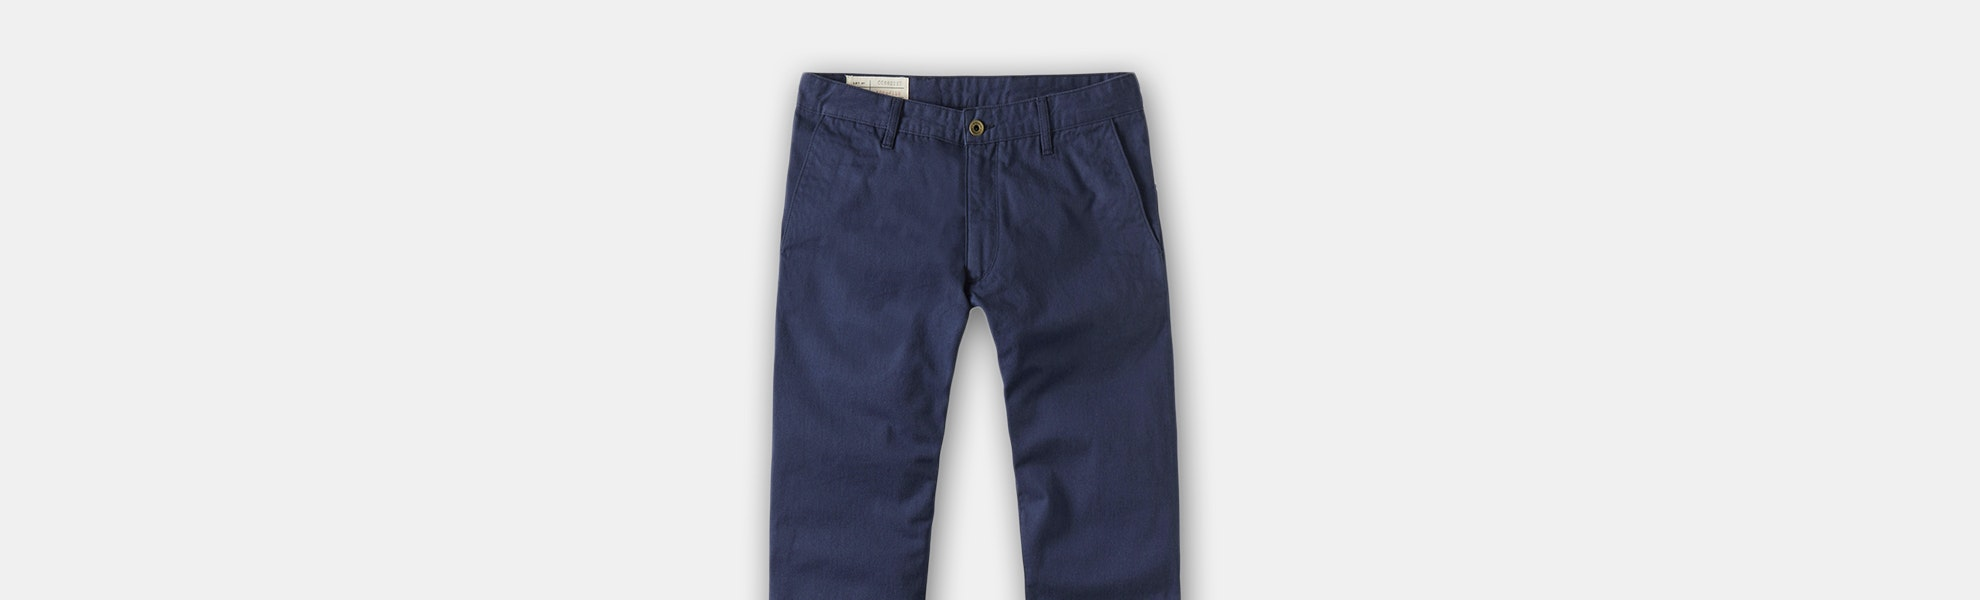 Double Eleven Chino Pants